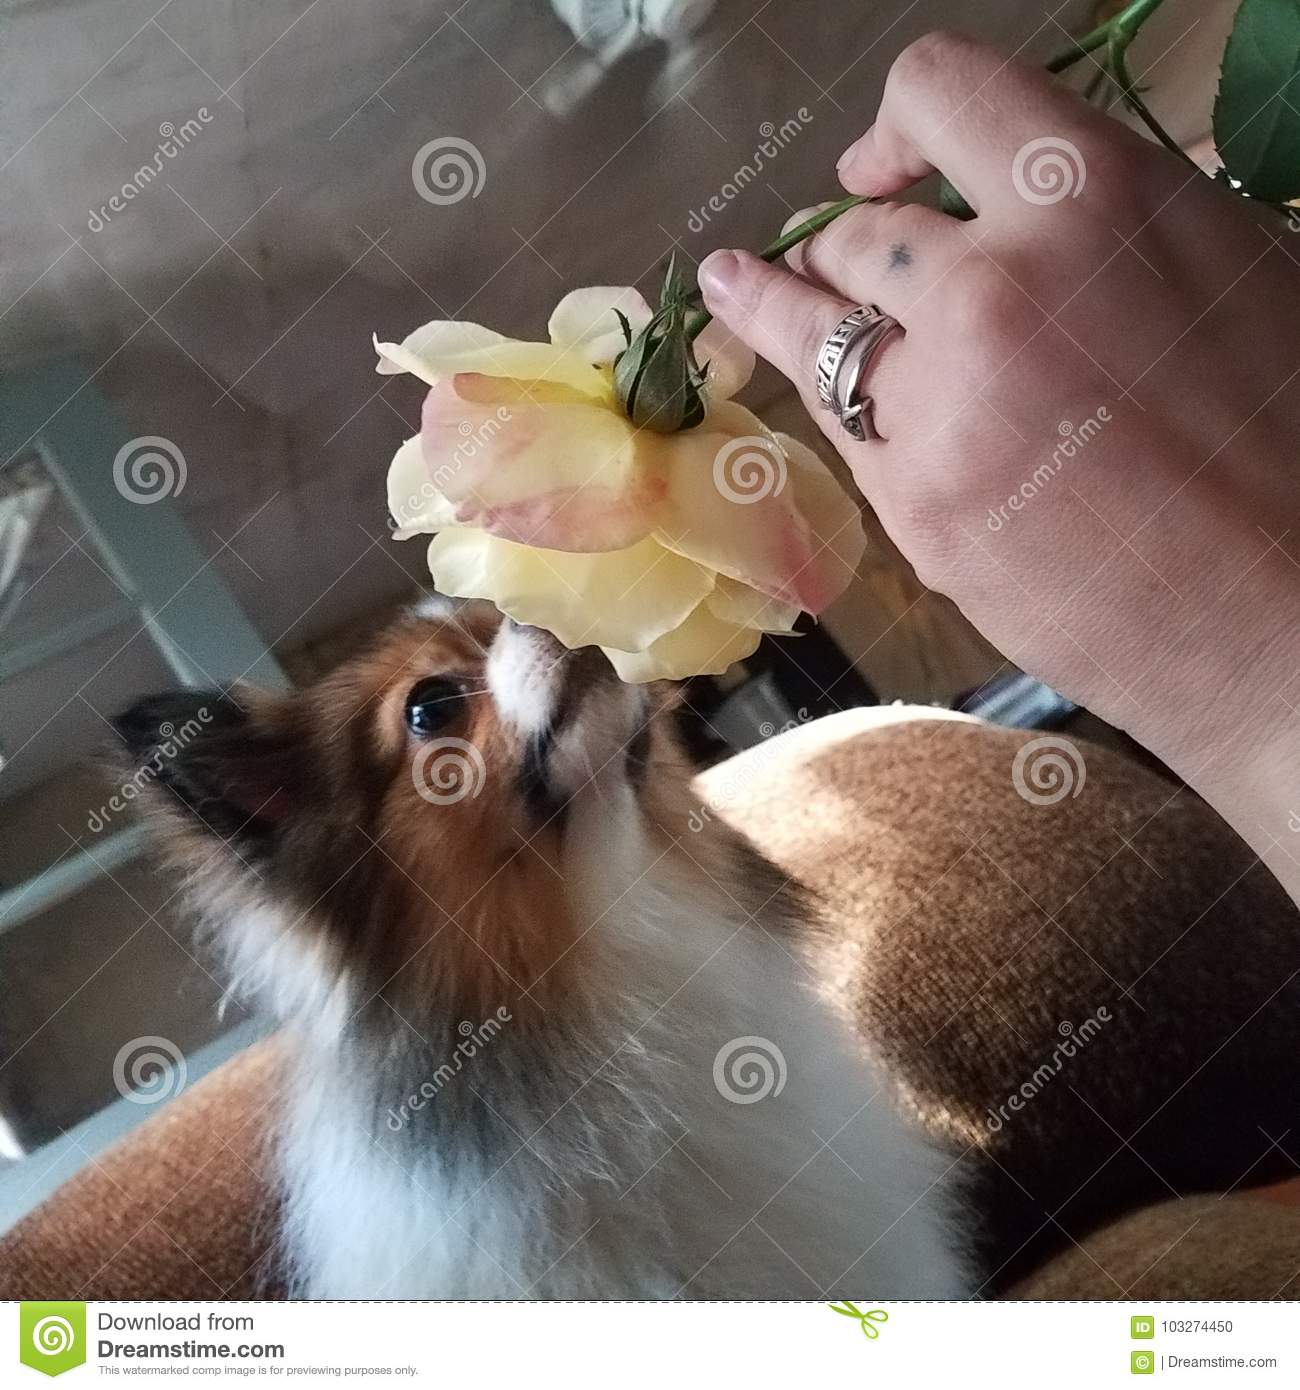 Evan dogs need to Smell the roses sometimes